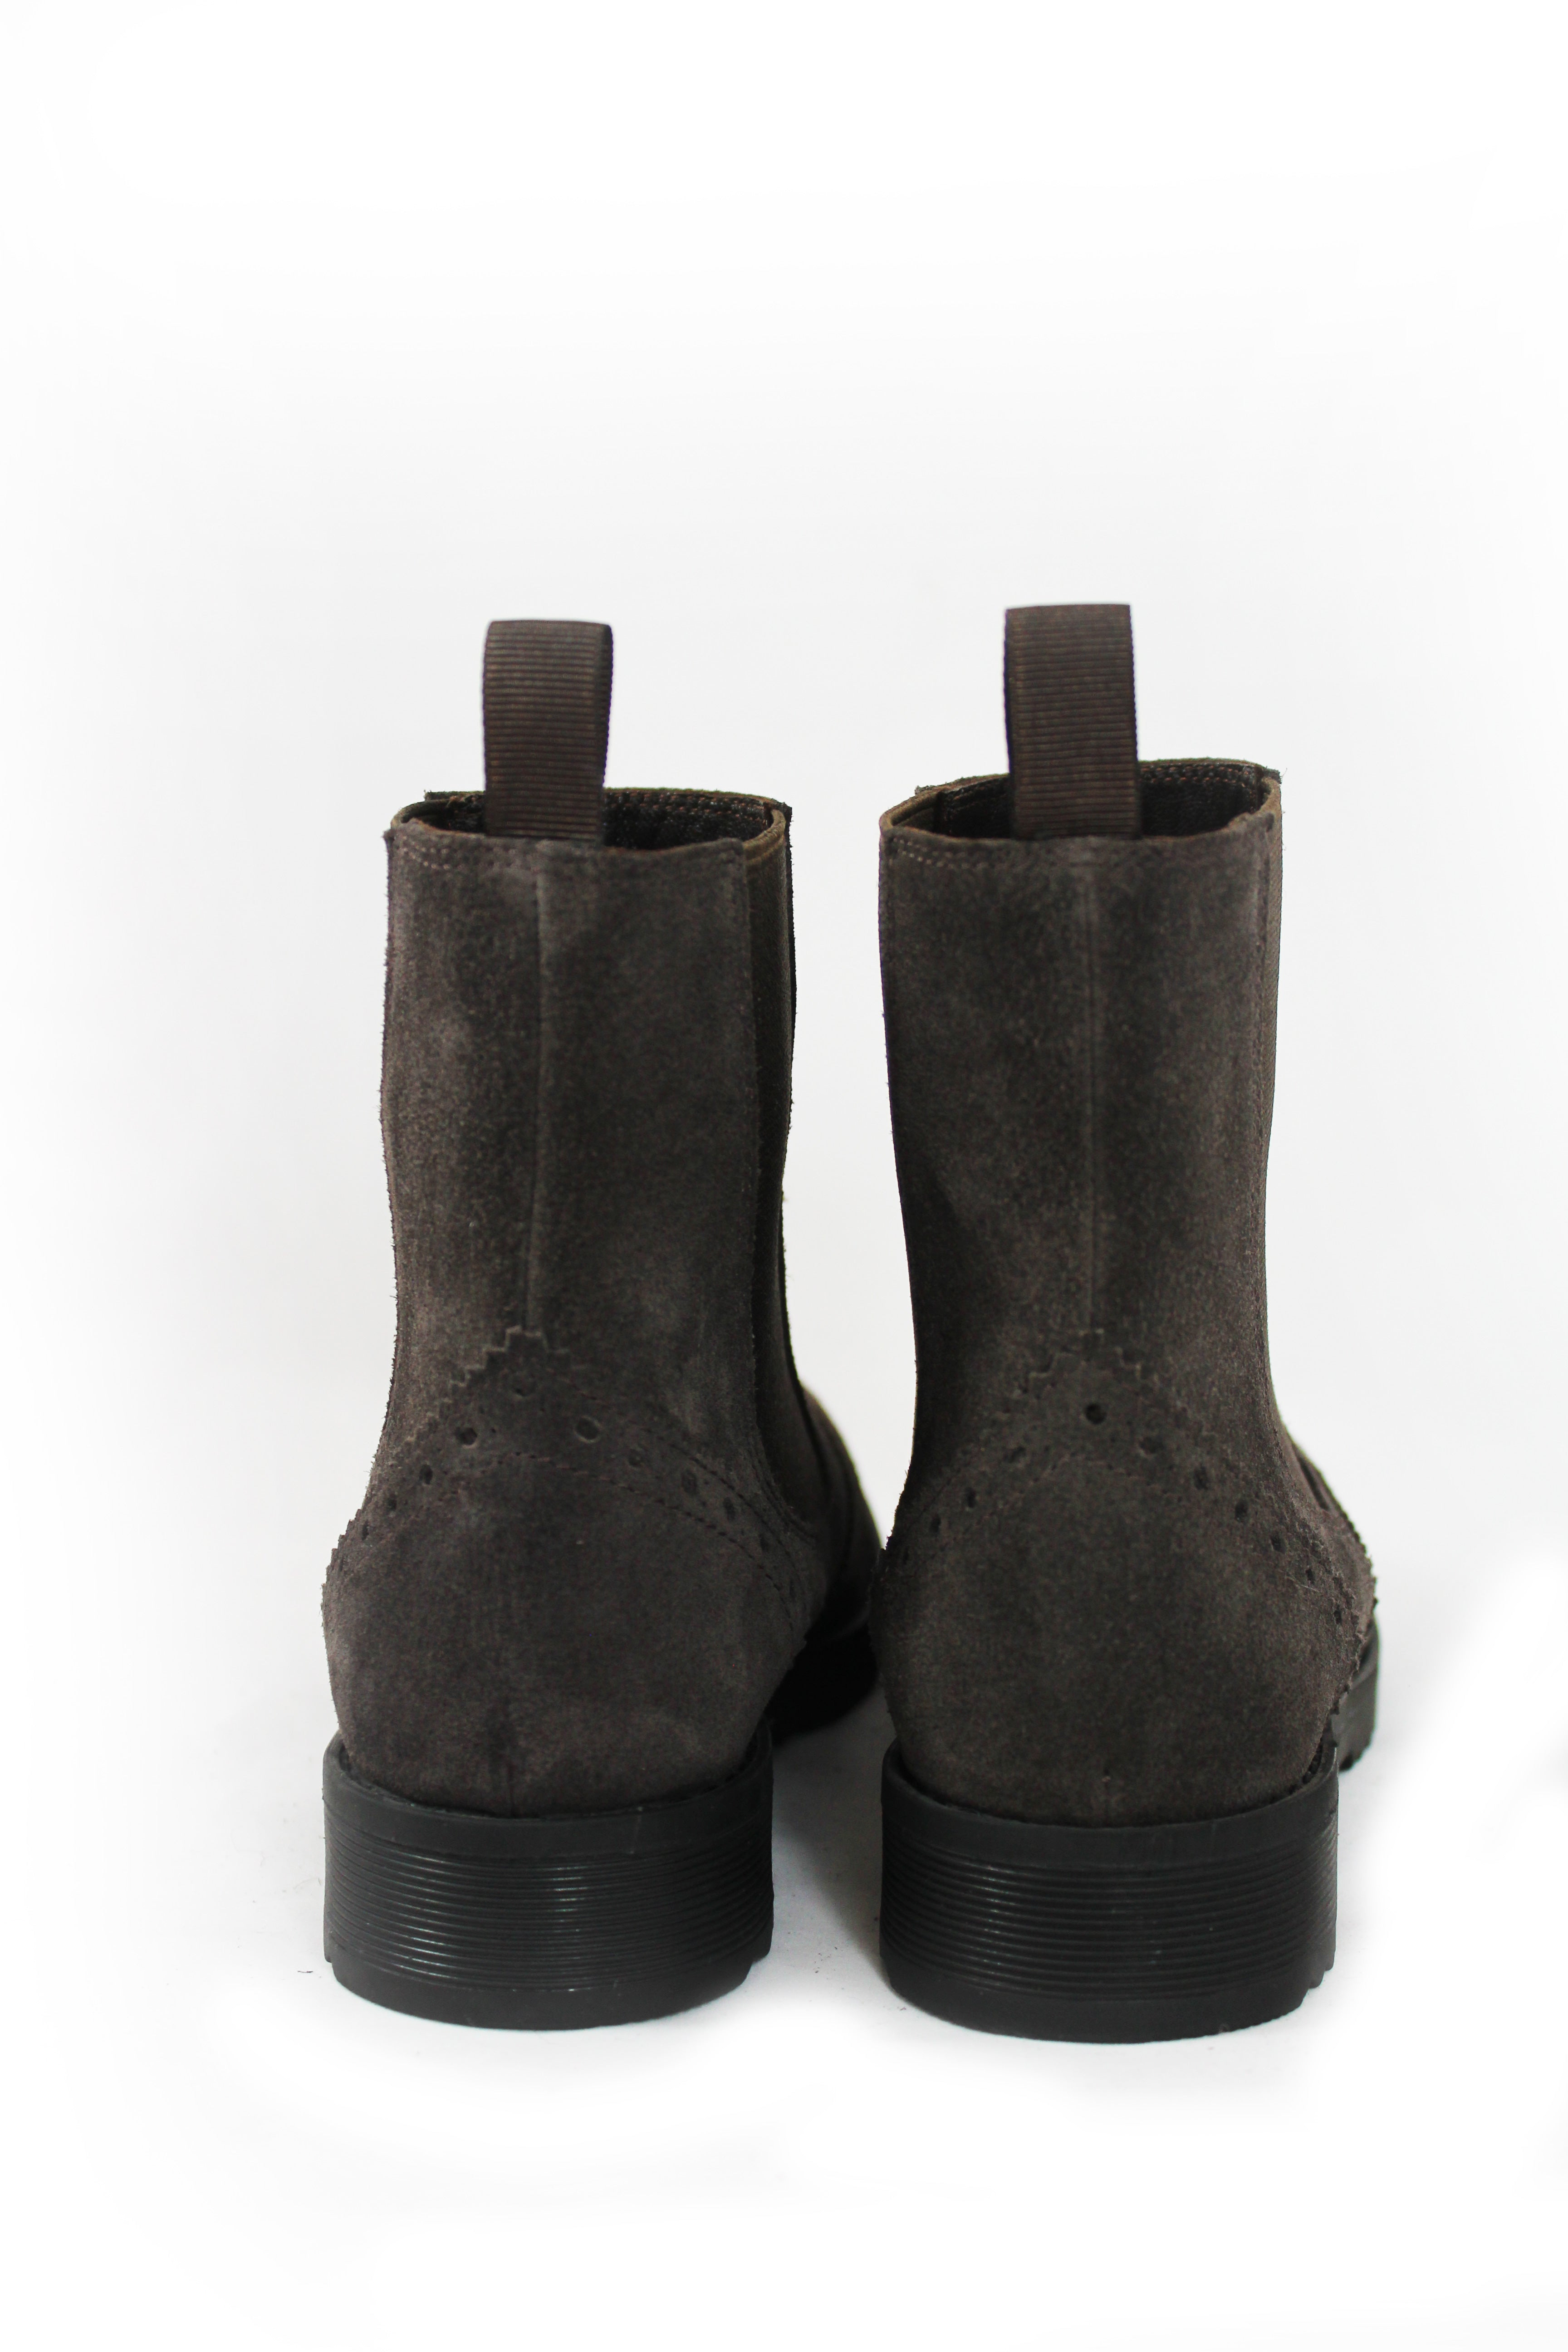 Boots/Buse